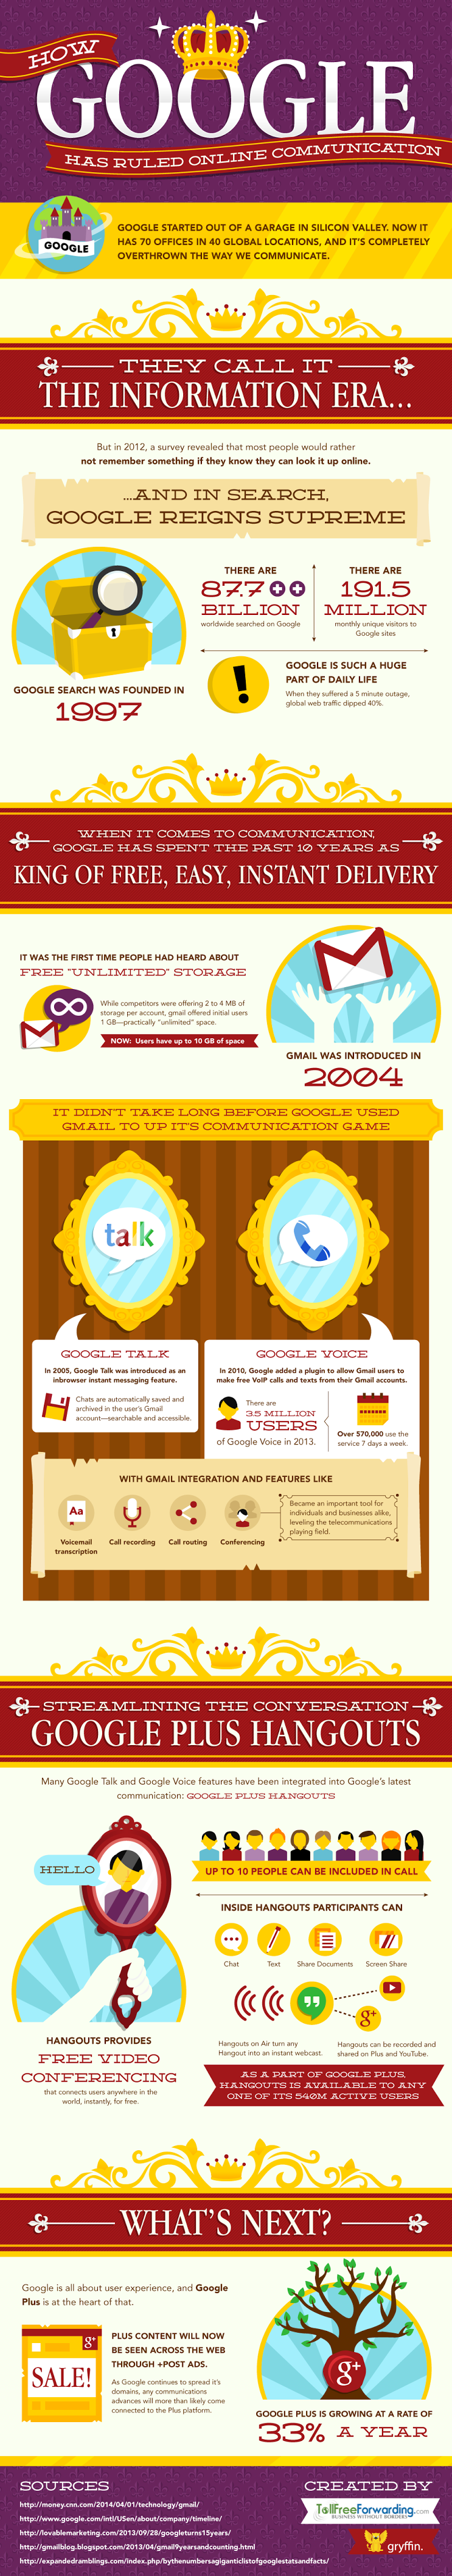 How Google Has Ruled Online World - #infographic #Google